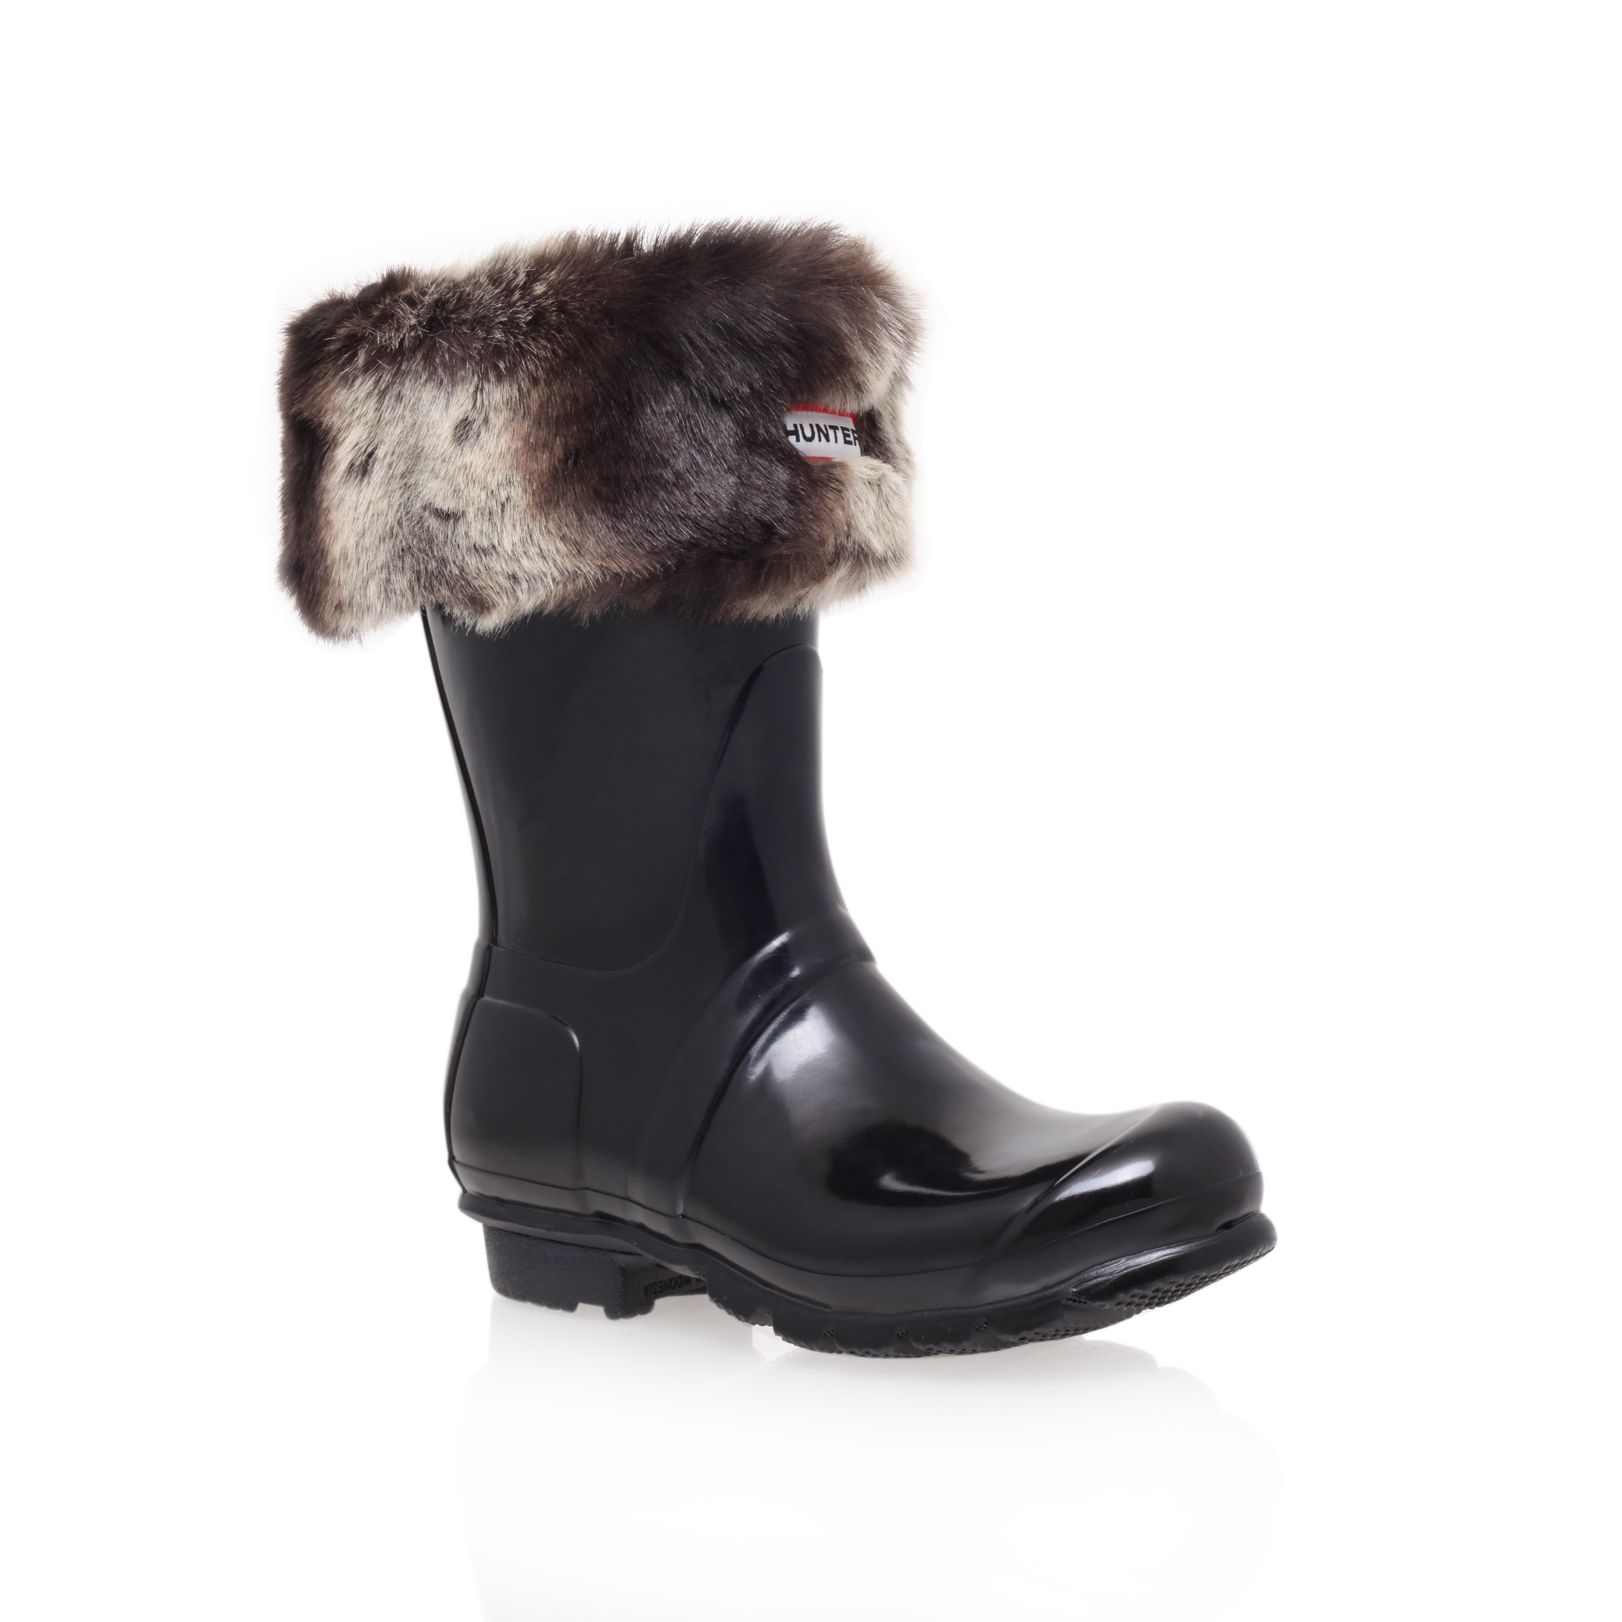 Soft furry cuff boot sock